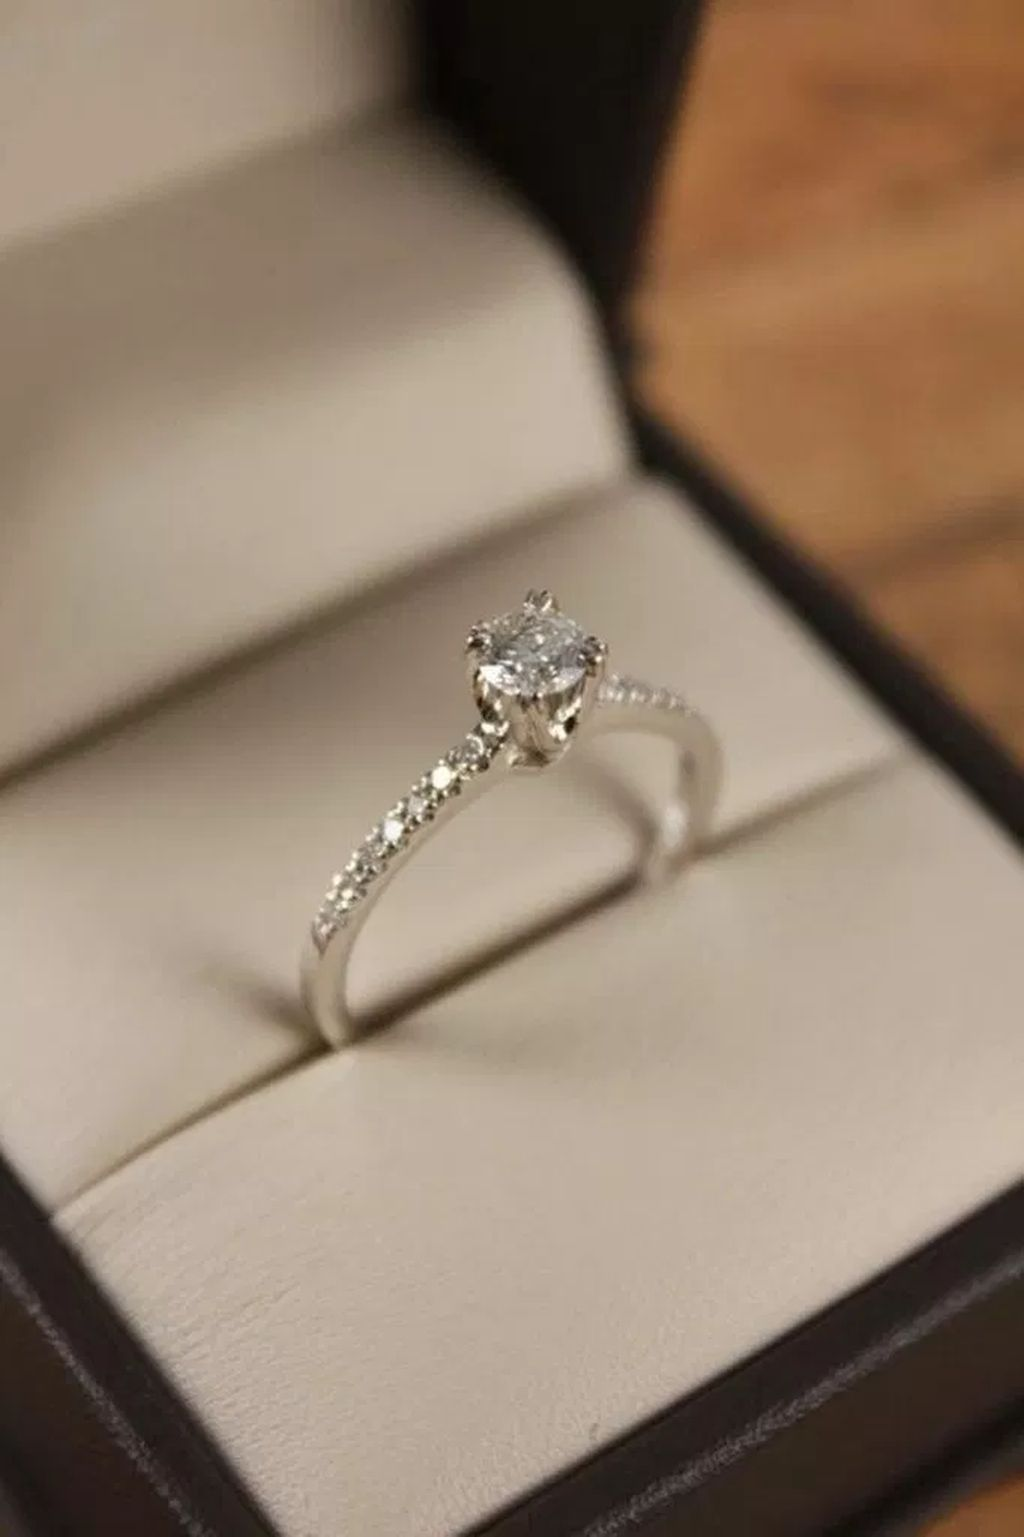 20+ Impressive Engagement Rings Design Ideas To Try In 2019 ...